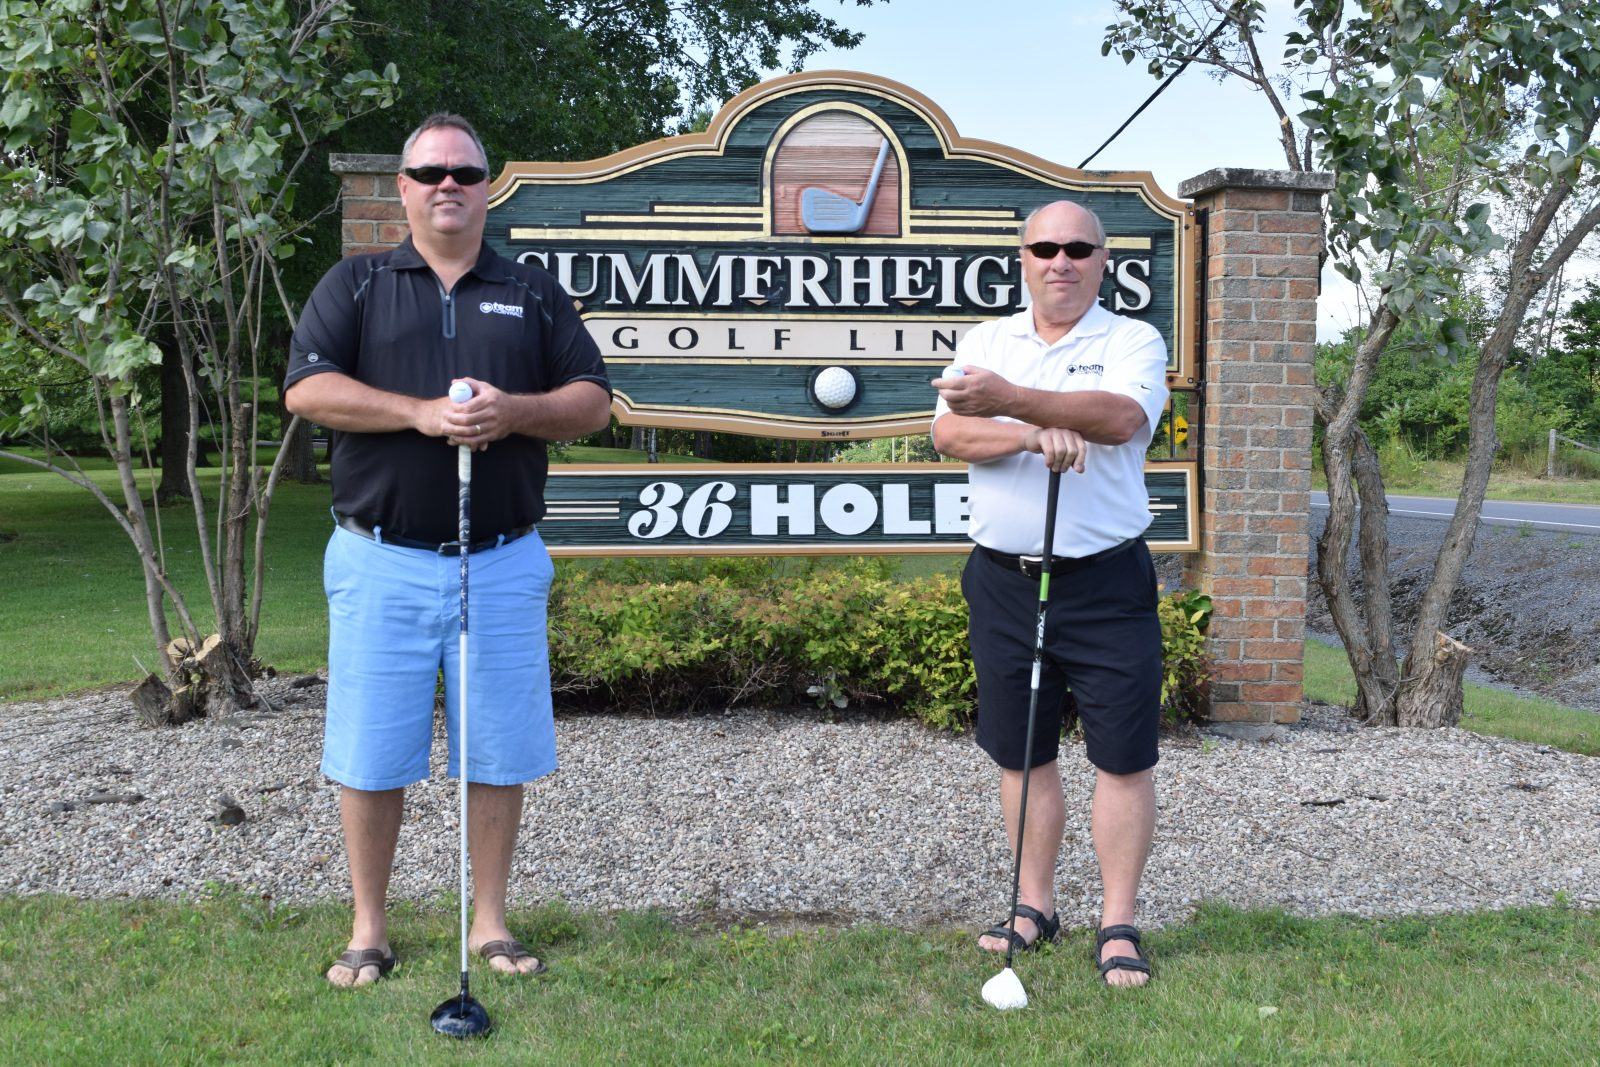 Team Cornwall Golf will tee off on Sept. 10